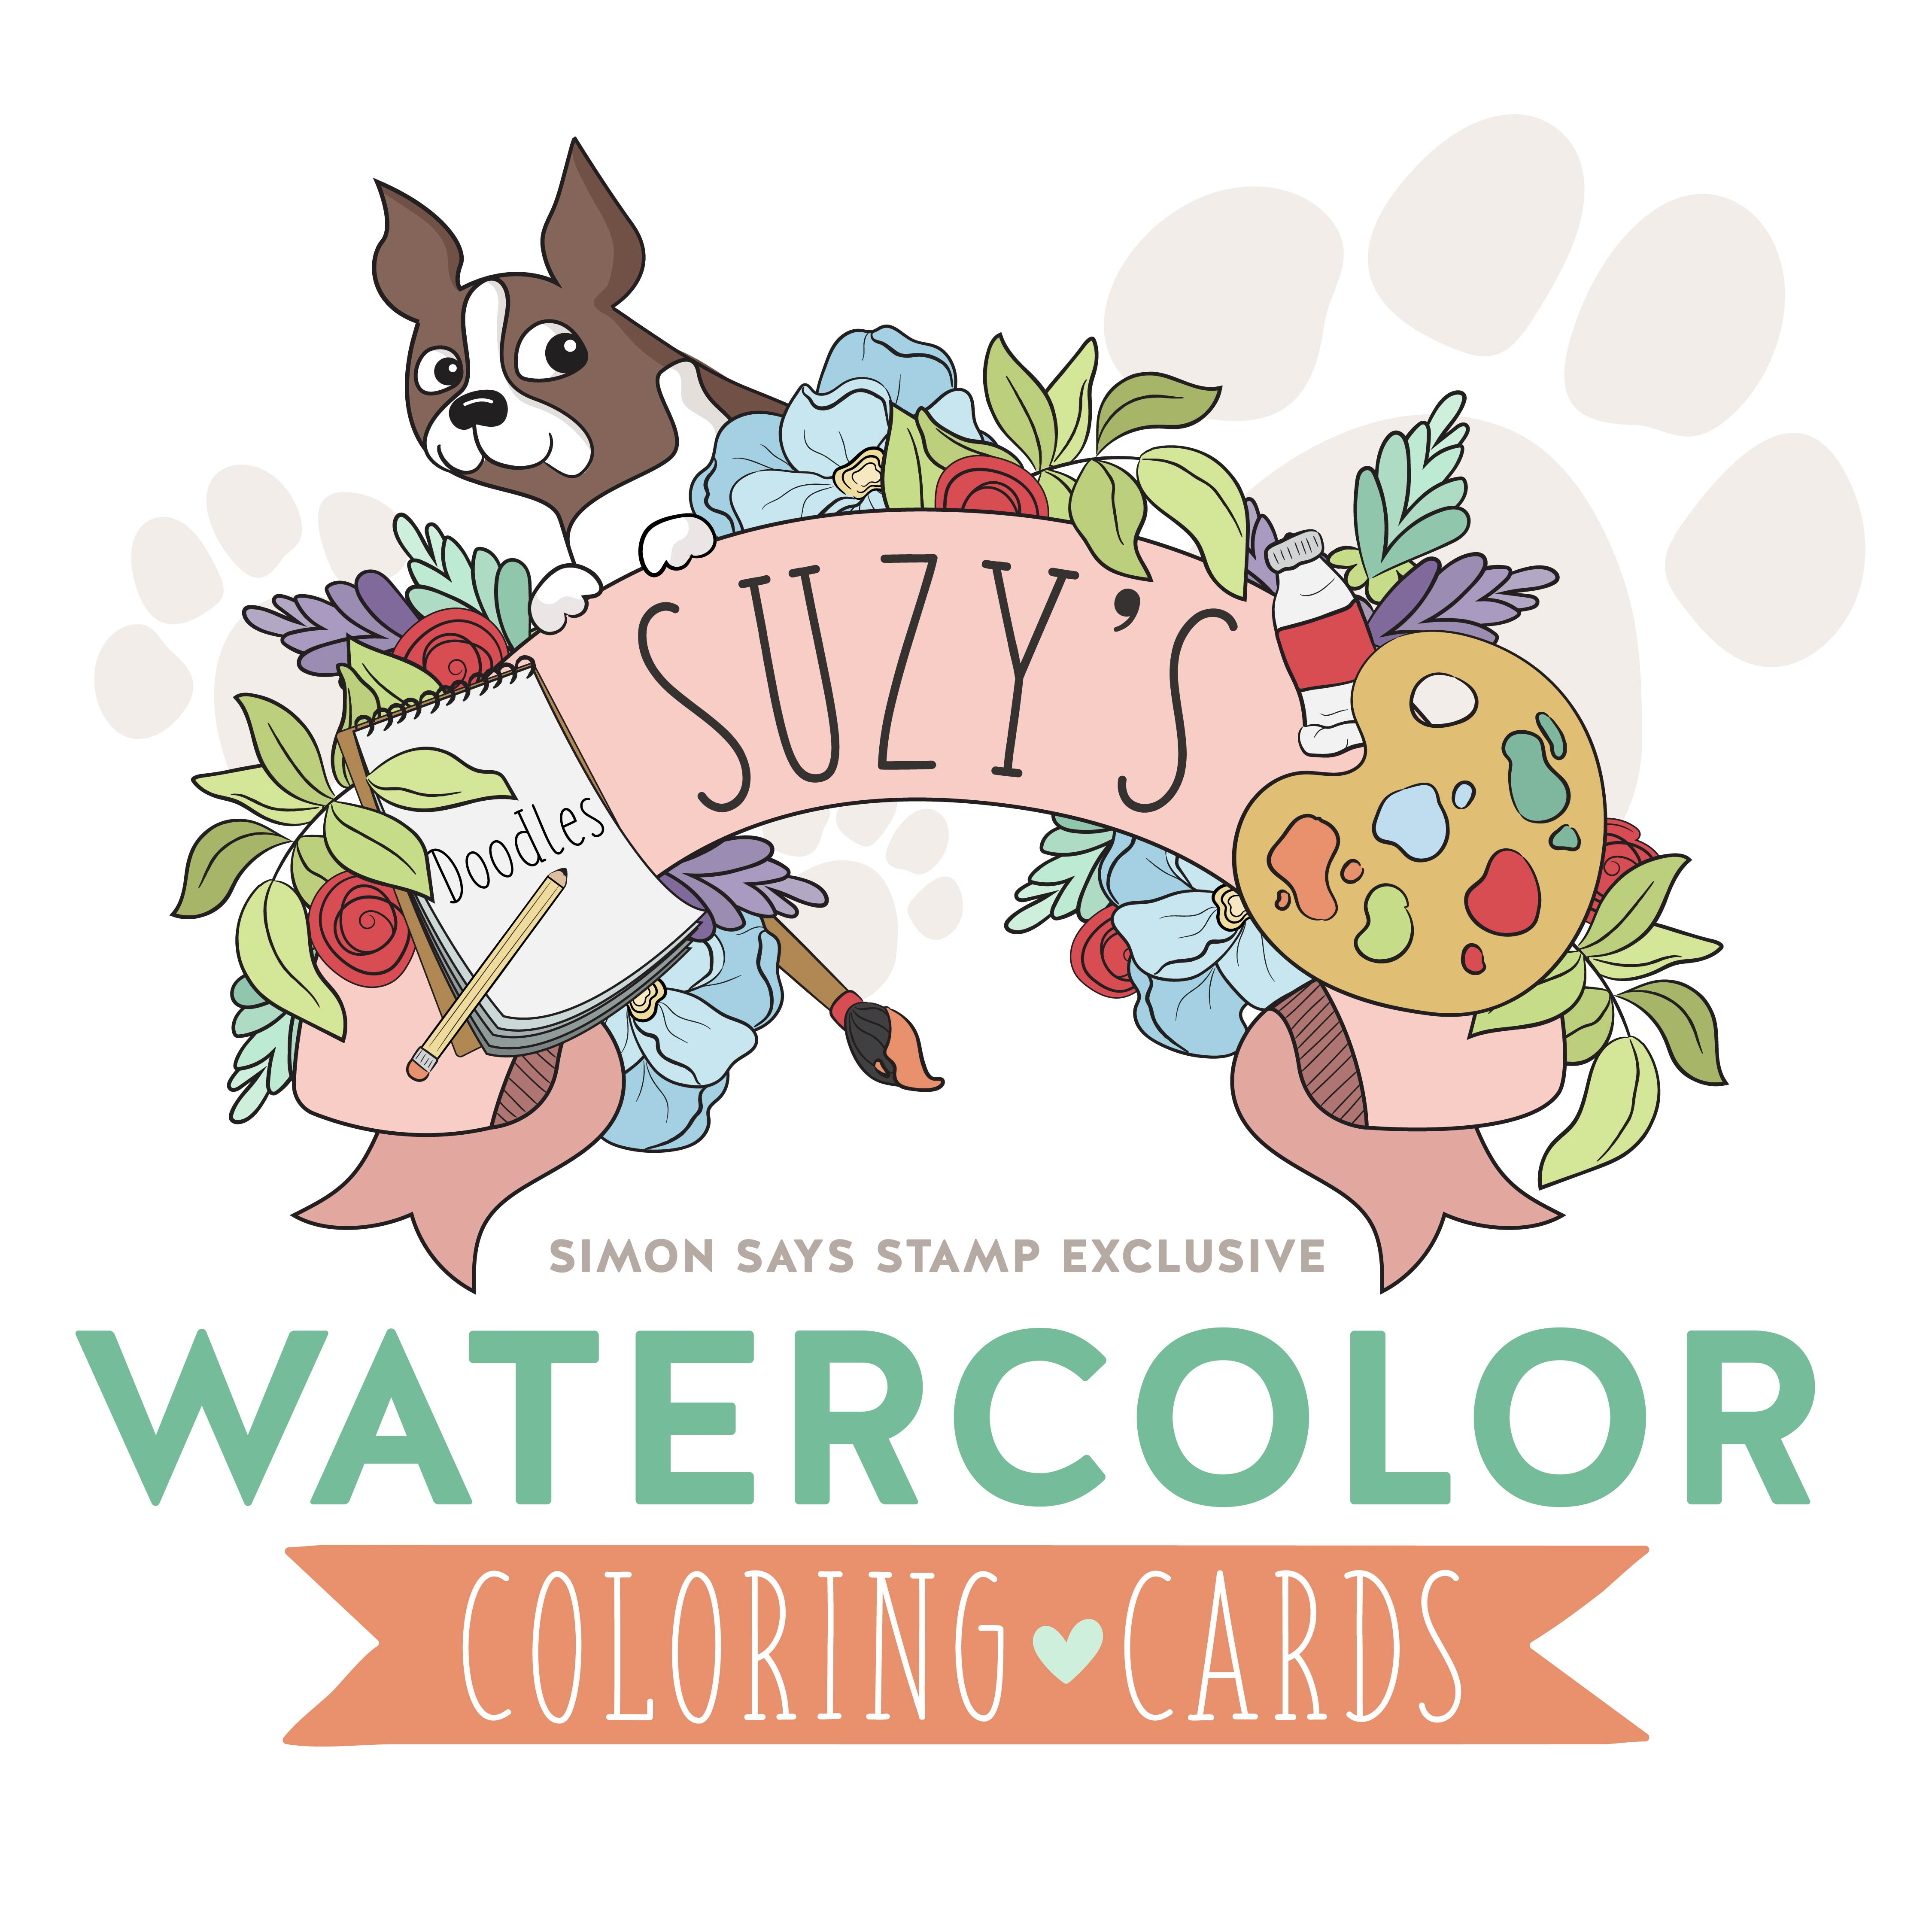 Suzy's Watercolor Cards brand image